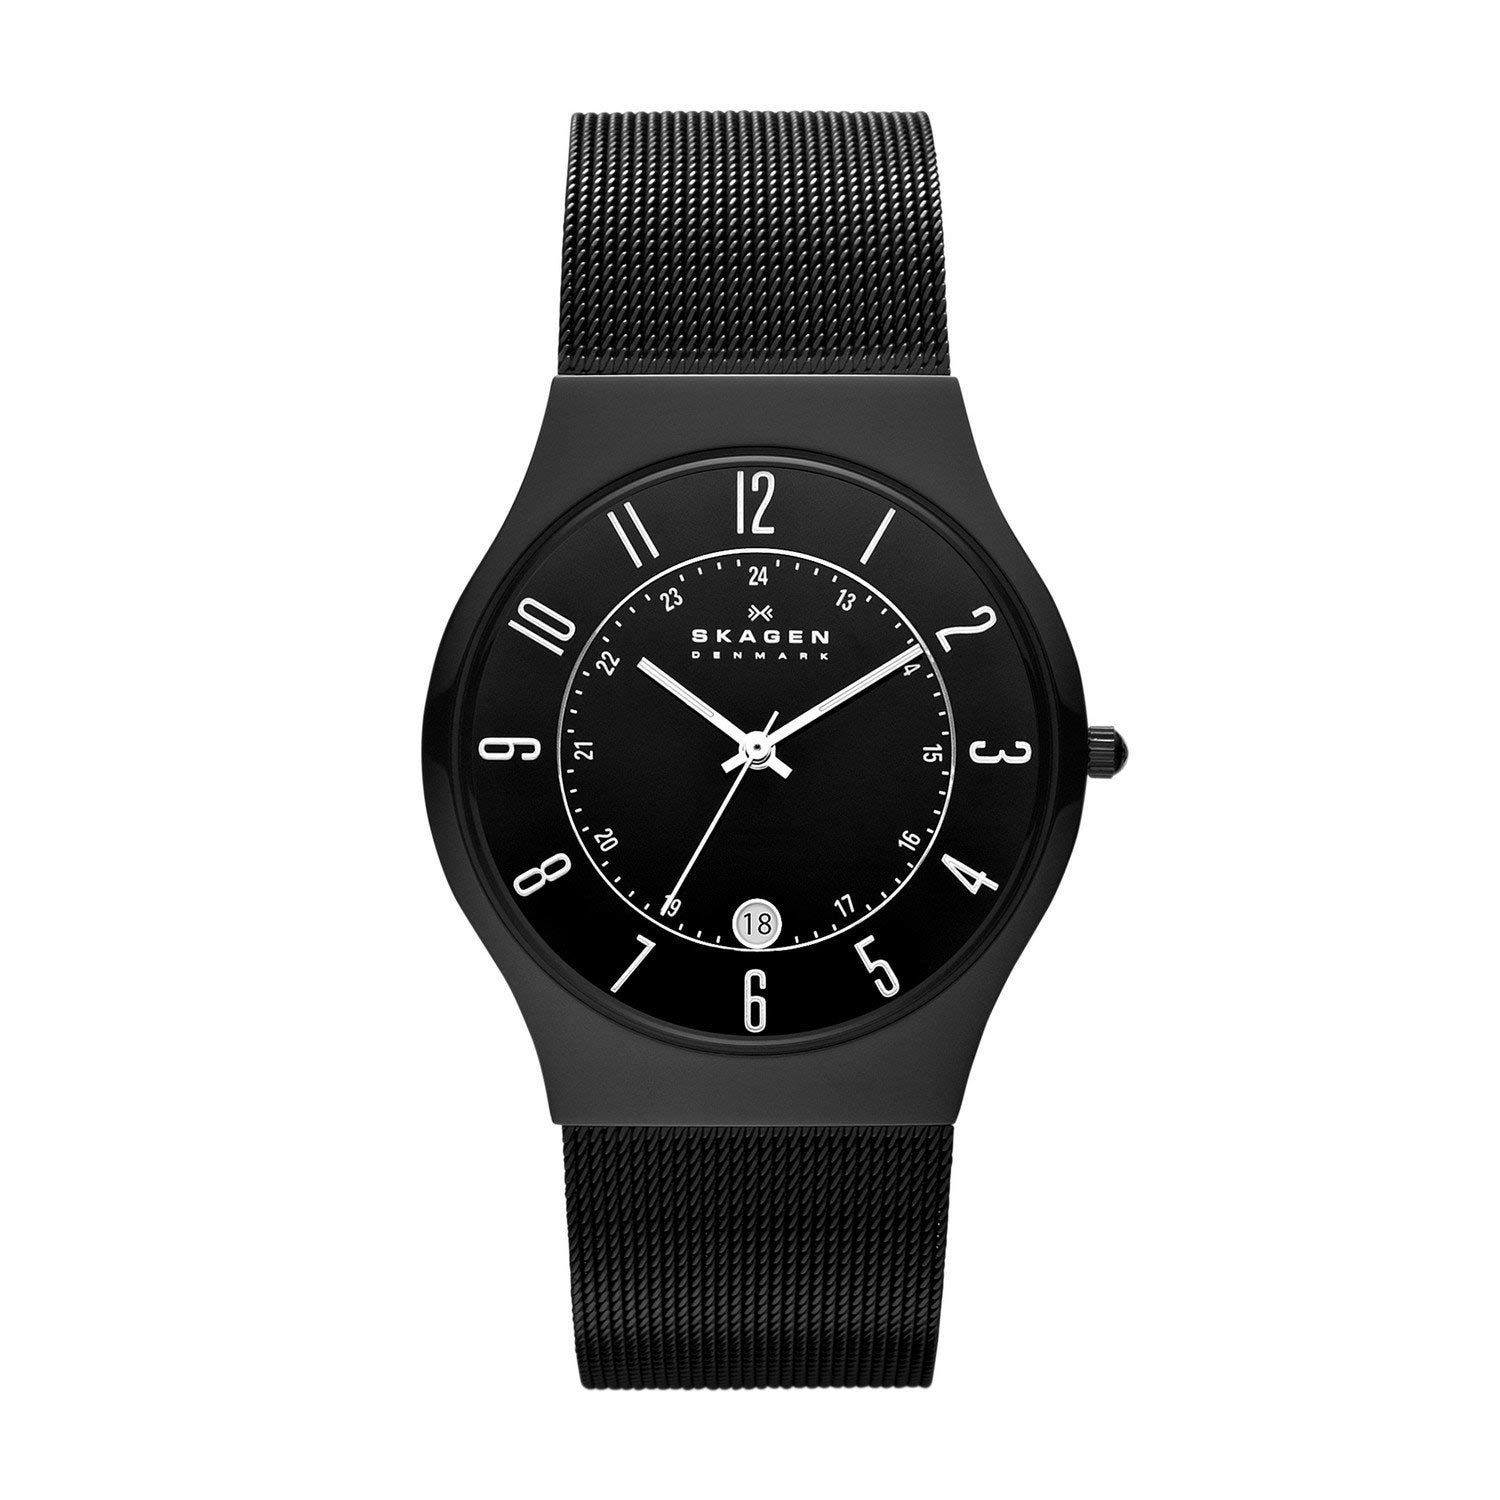 skagen 233xltmb grenen titanuhr slimline herrenuhr in. Black Bedroom Furniture Sets. Home Design Ideas